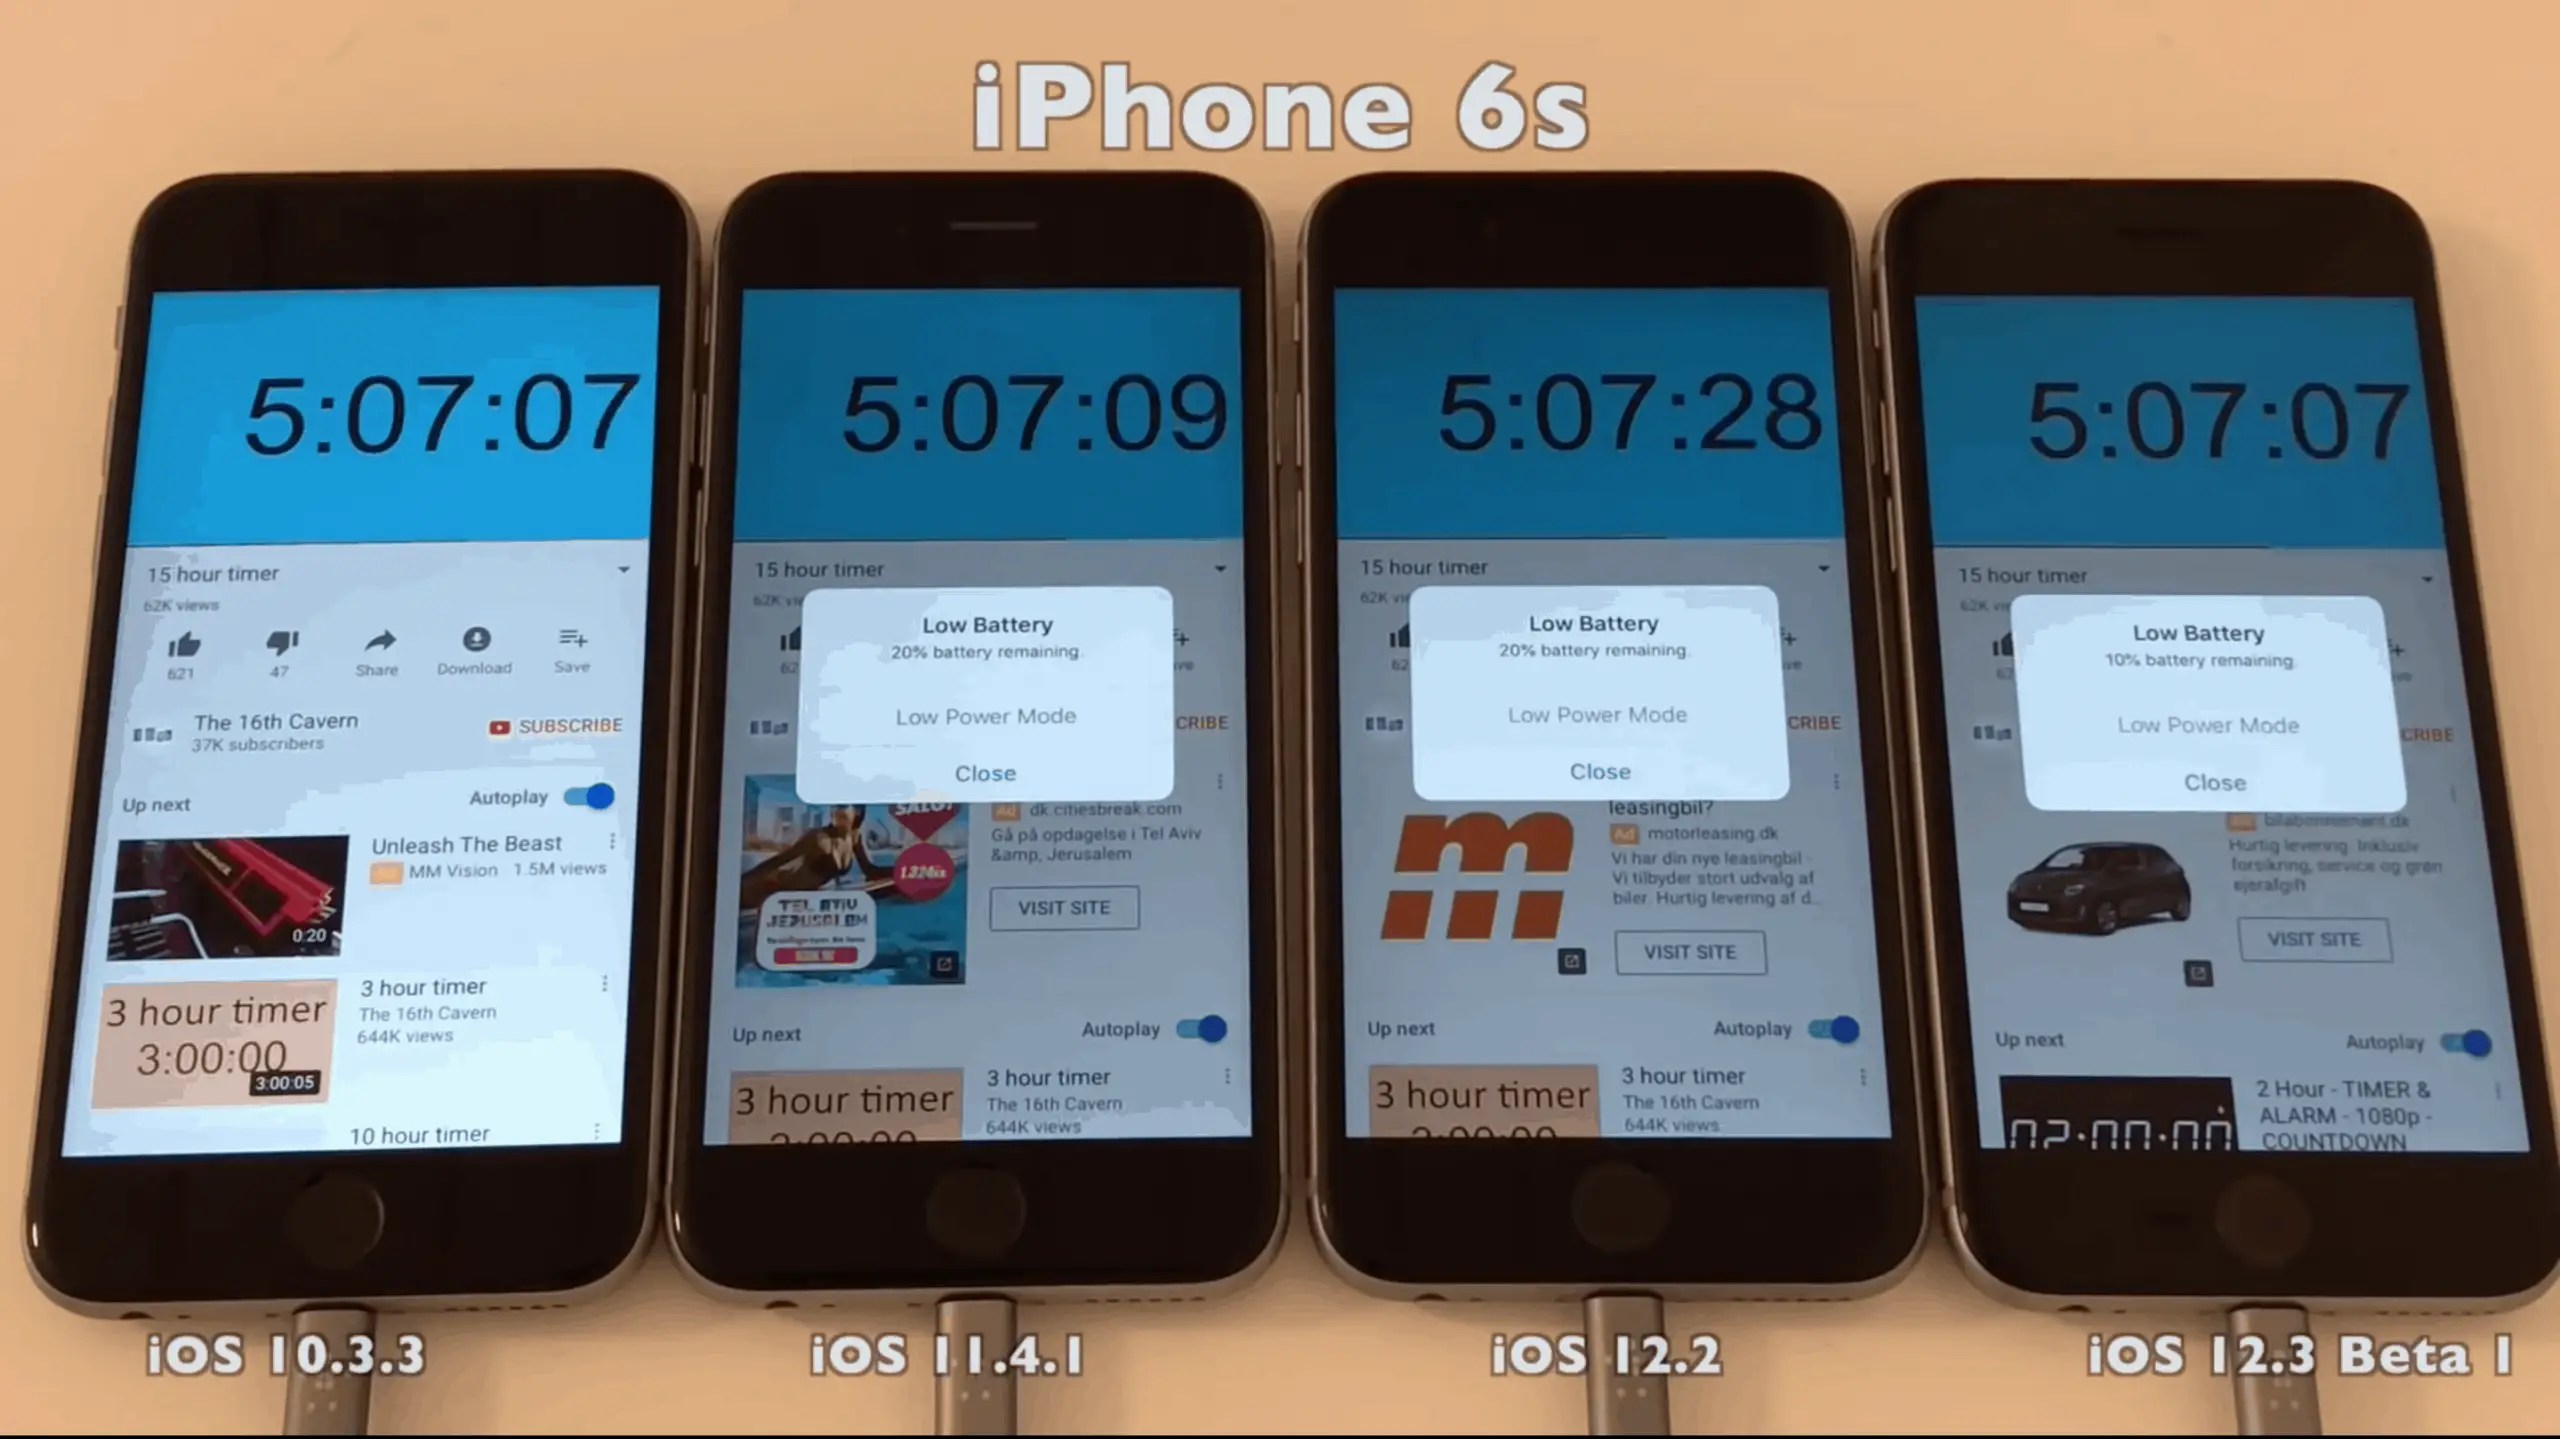 iOS 11 to iOS 12.2 could drain your iPhone. iPad and iPod touch battery faster | iLounge